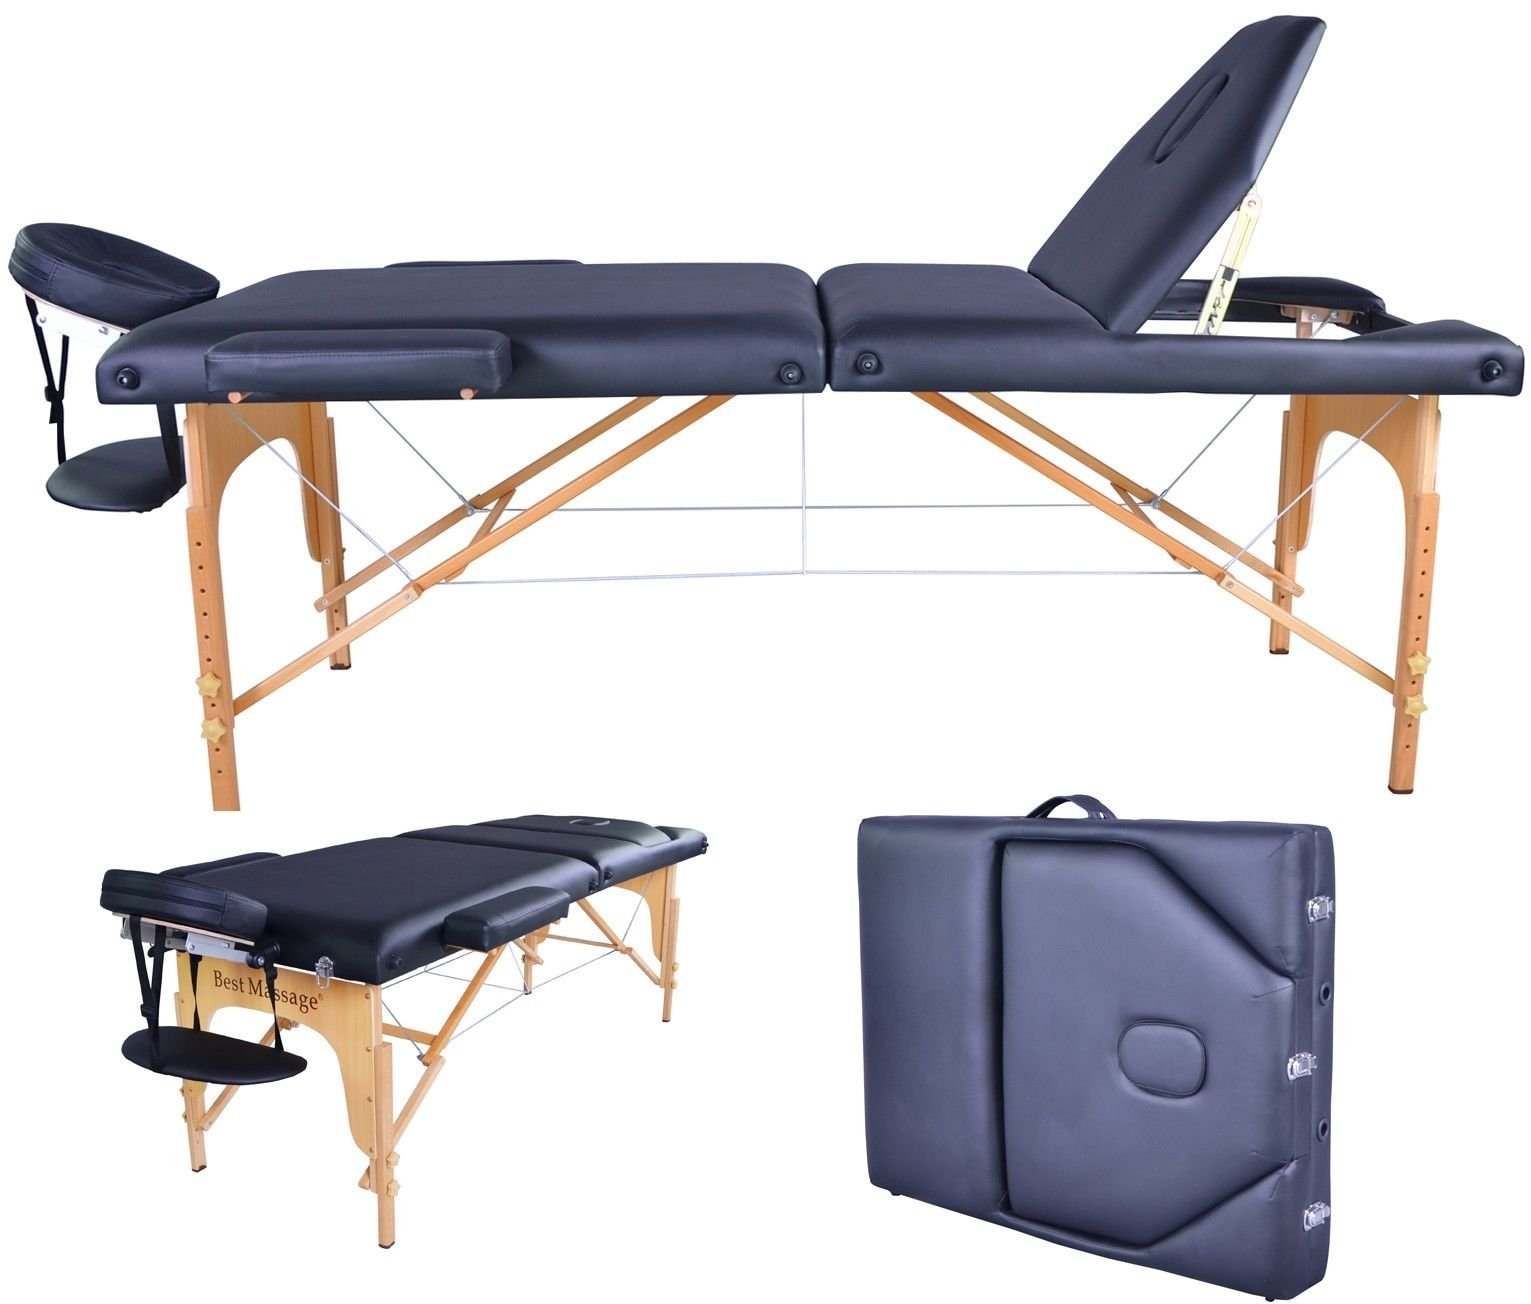 BestMassage PU Portable Massage Table w/Carry Case